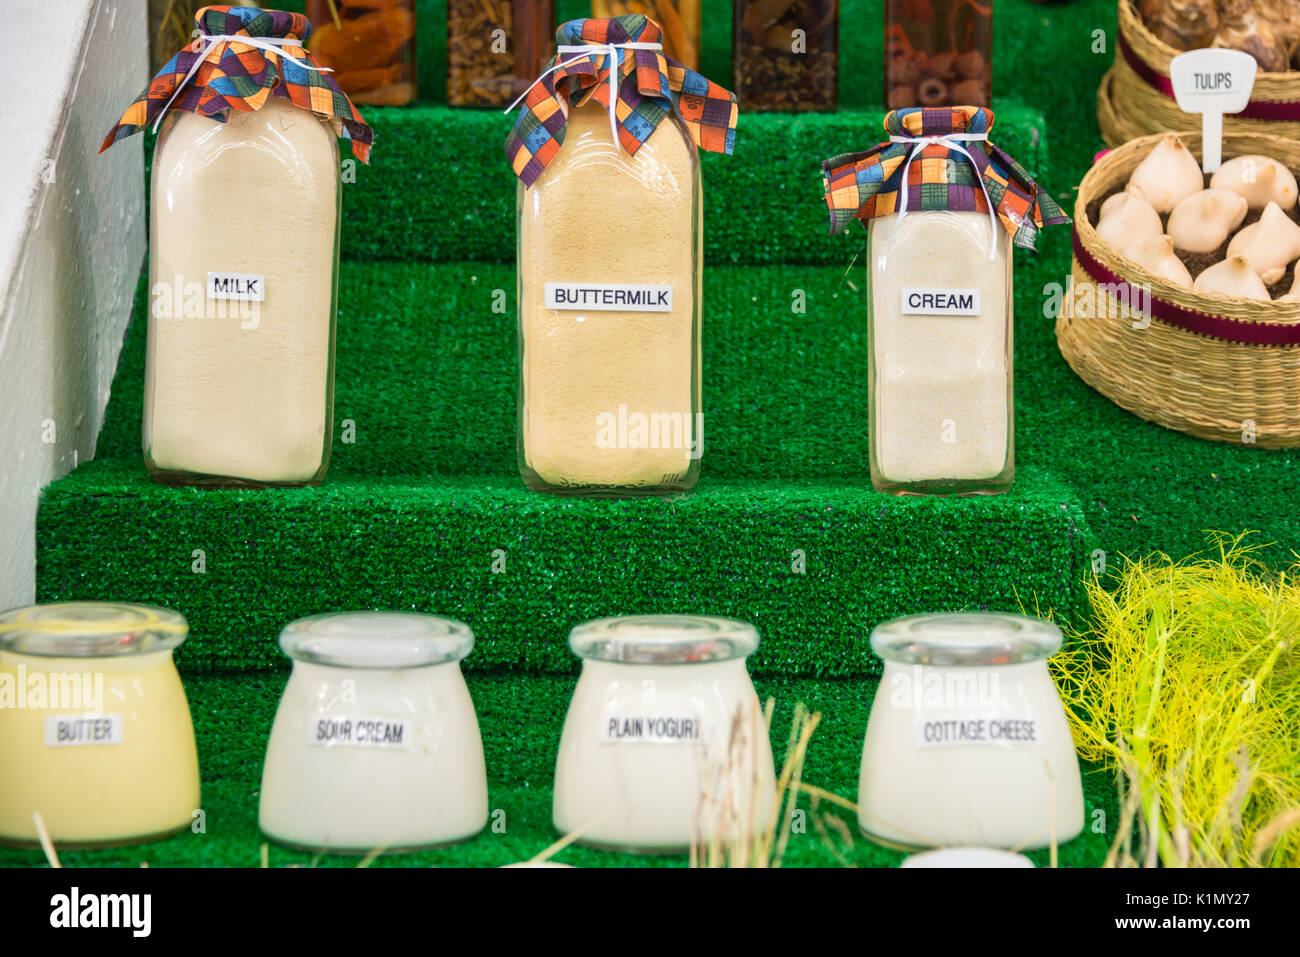 Labeled Bottles and Jars of Various Dairy Products Displayed - Stock Image